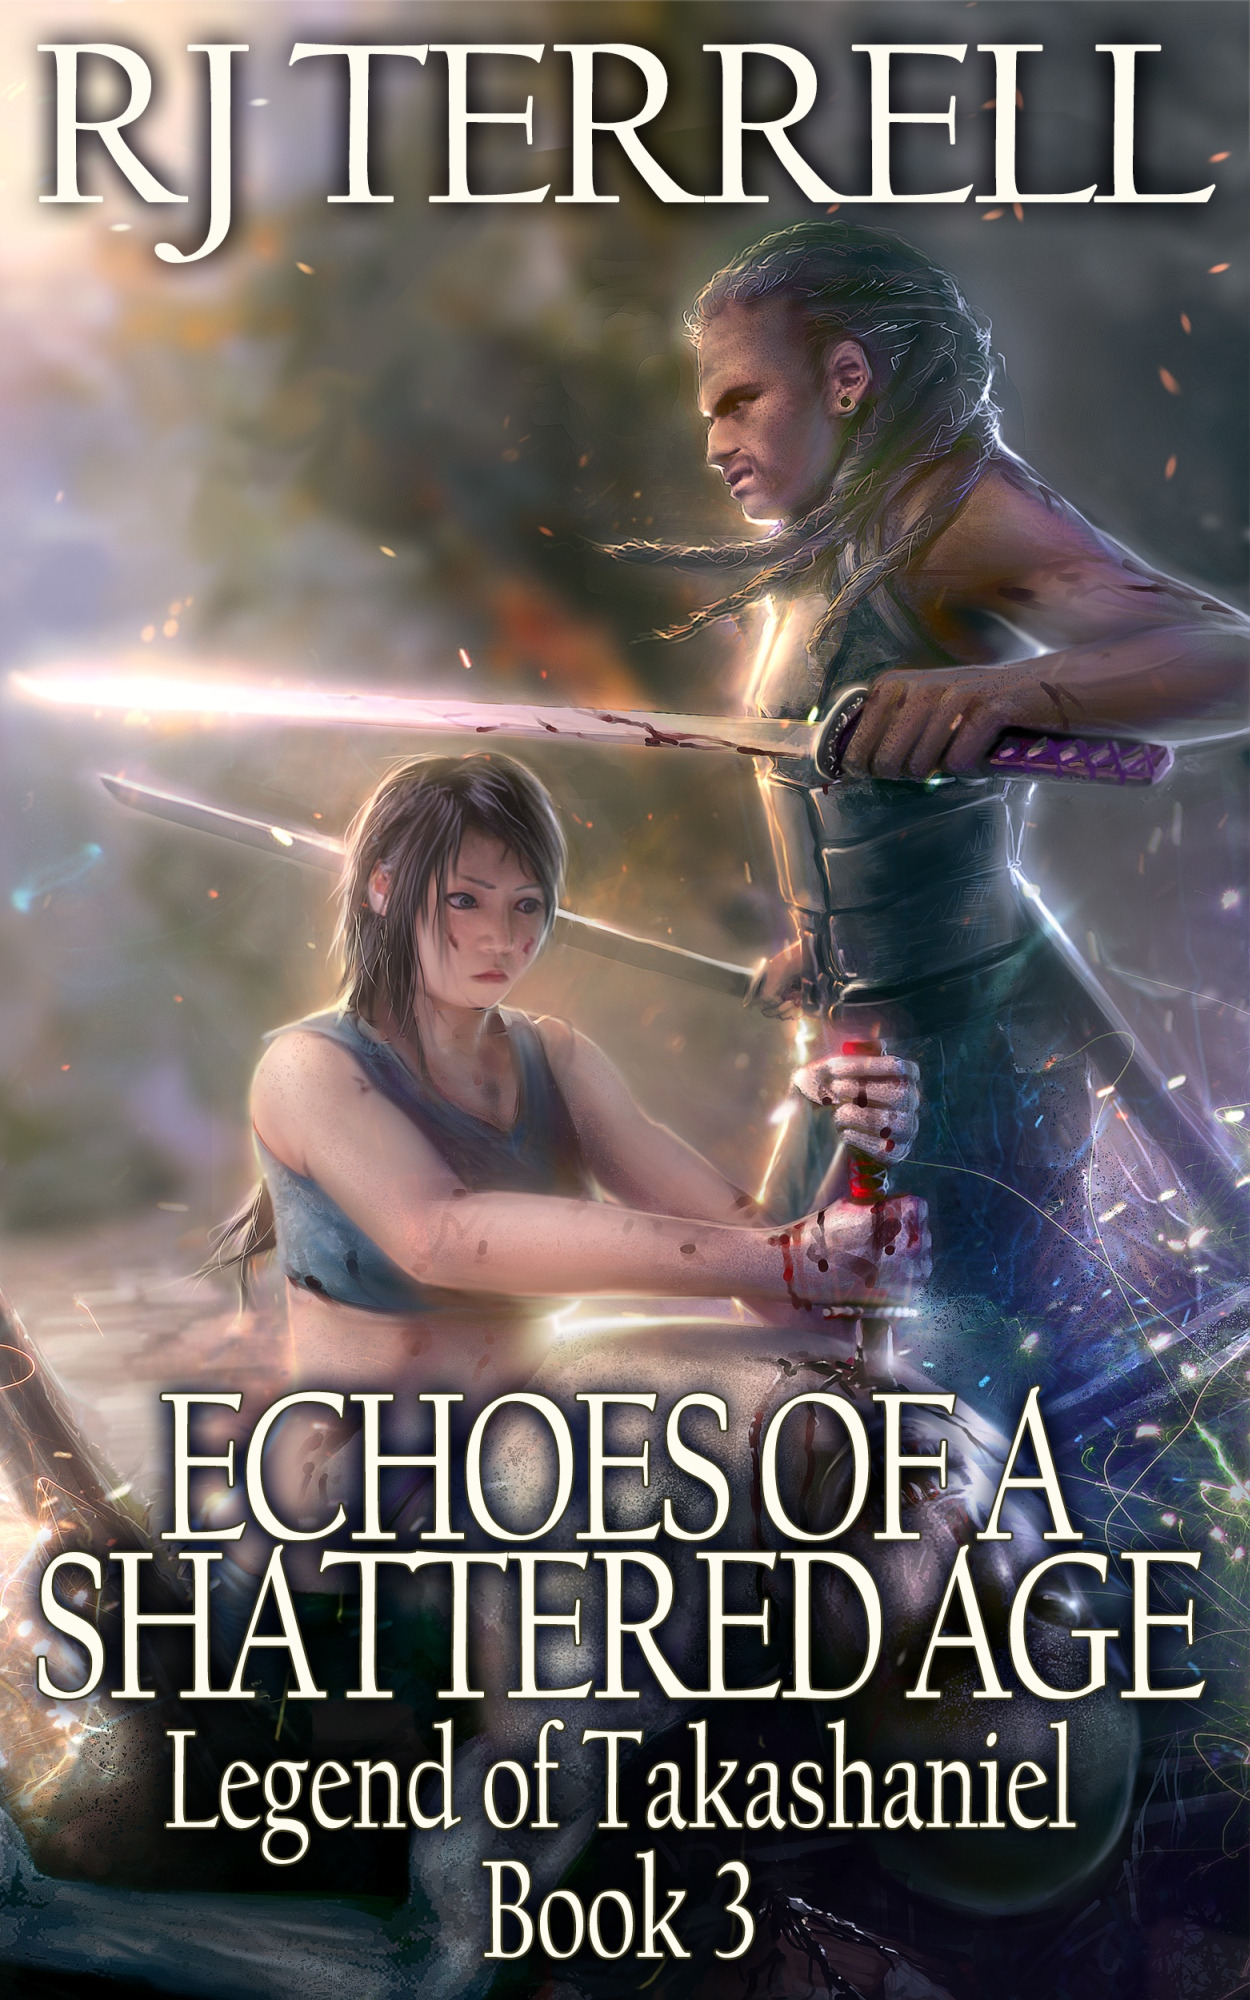 R. J. Terrell - Echoes Of A Shattered Age (Legend Of Takashaniel Trilogy: Book 1)